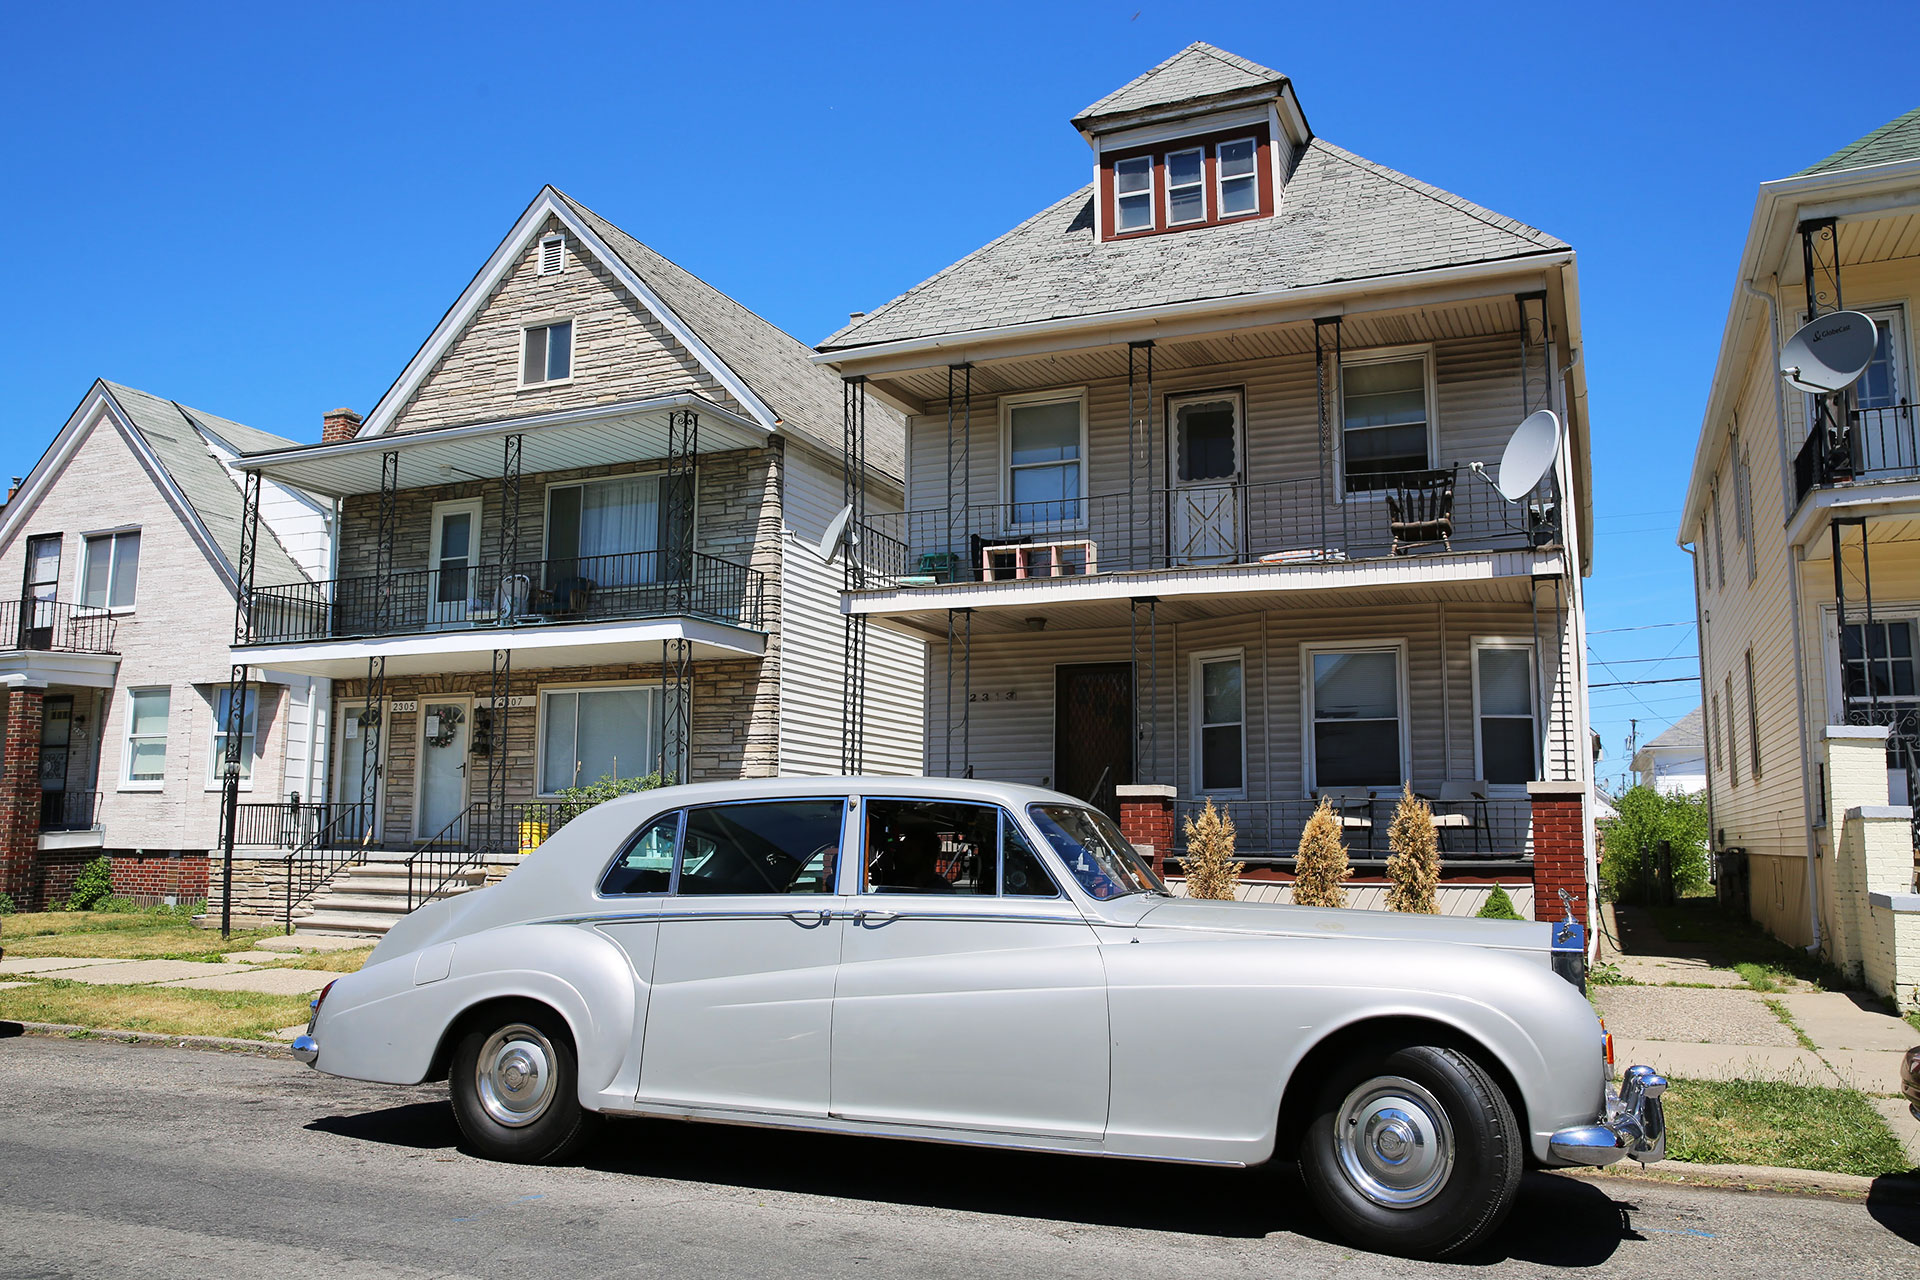 Elvis Presley's Rolls-Royce parks in front of a row house, in The King